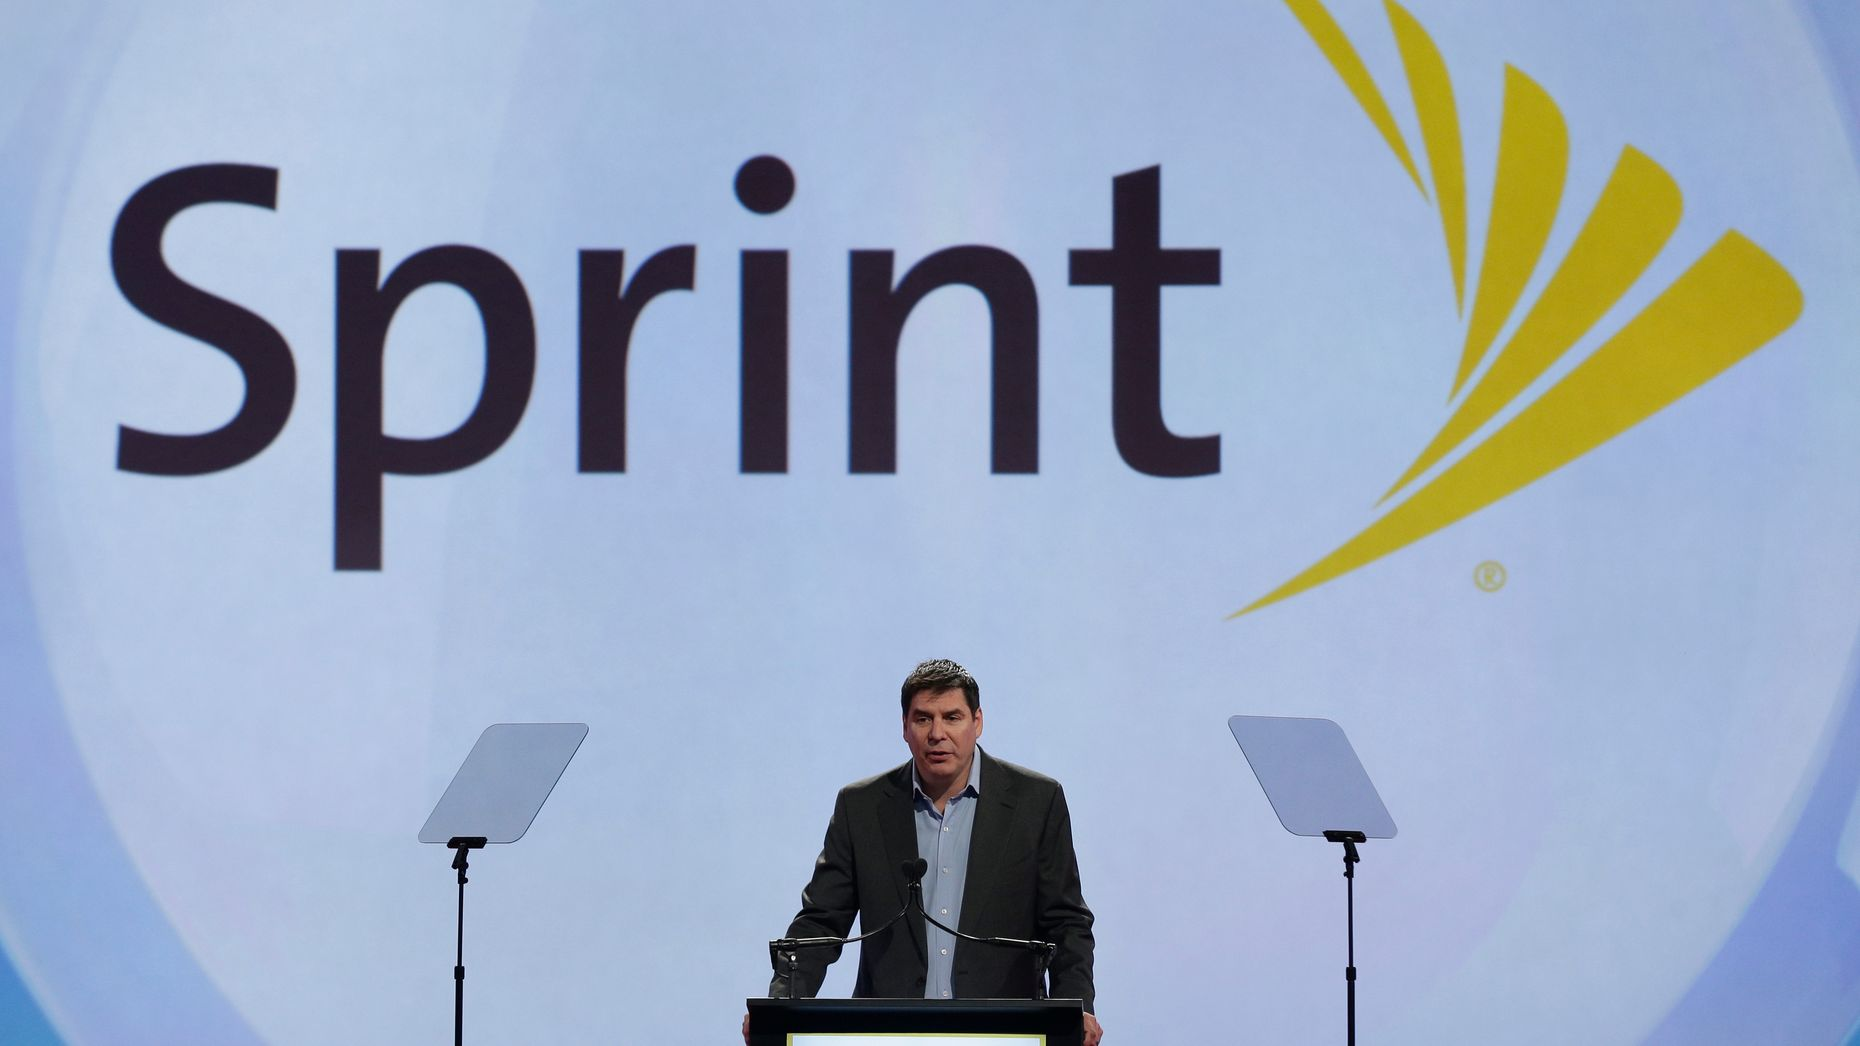 Sprint CEO Marcelo Claure. Photo by AP.